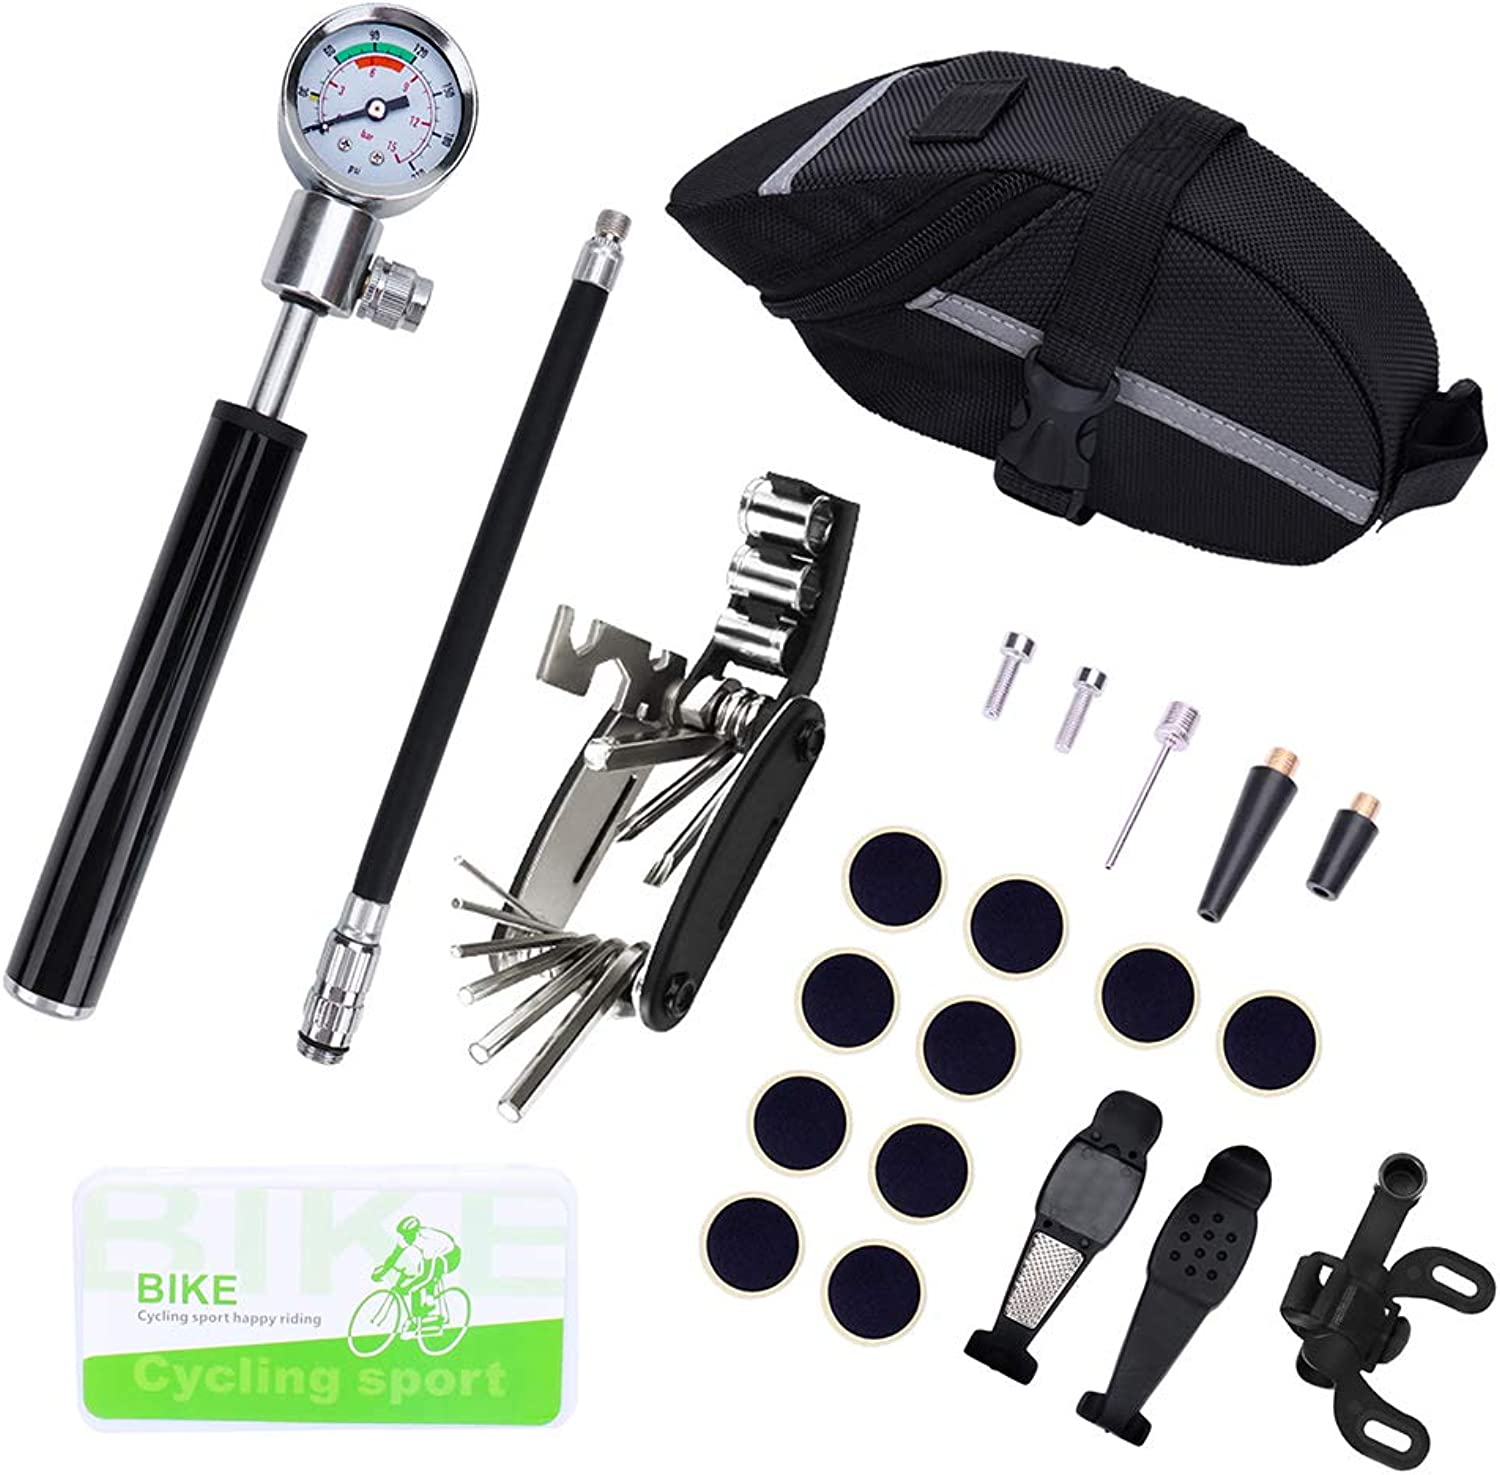 BESPORTBLE Bicycle Bike Cycling Tire Glueless Puncture Repair Kit Fits Presta Schrader Valve High Pressure 210 Psi Set